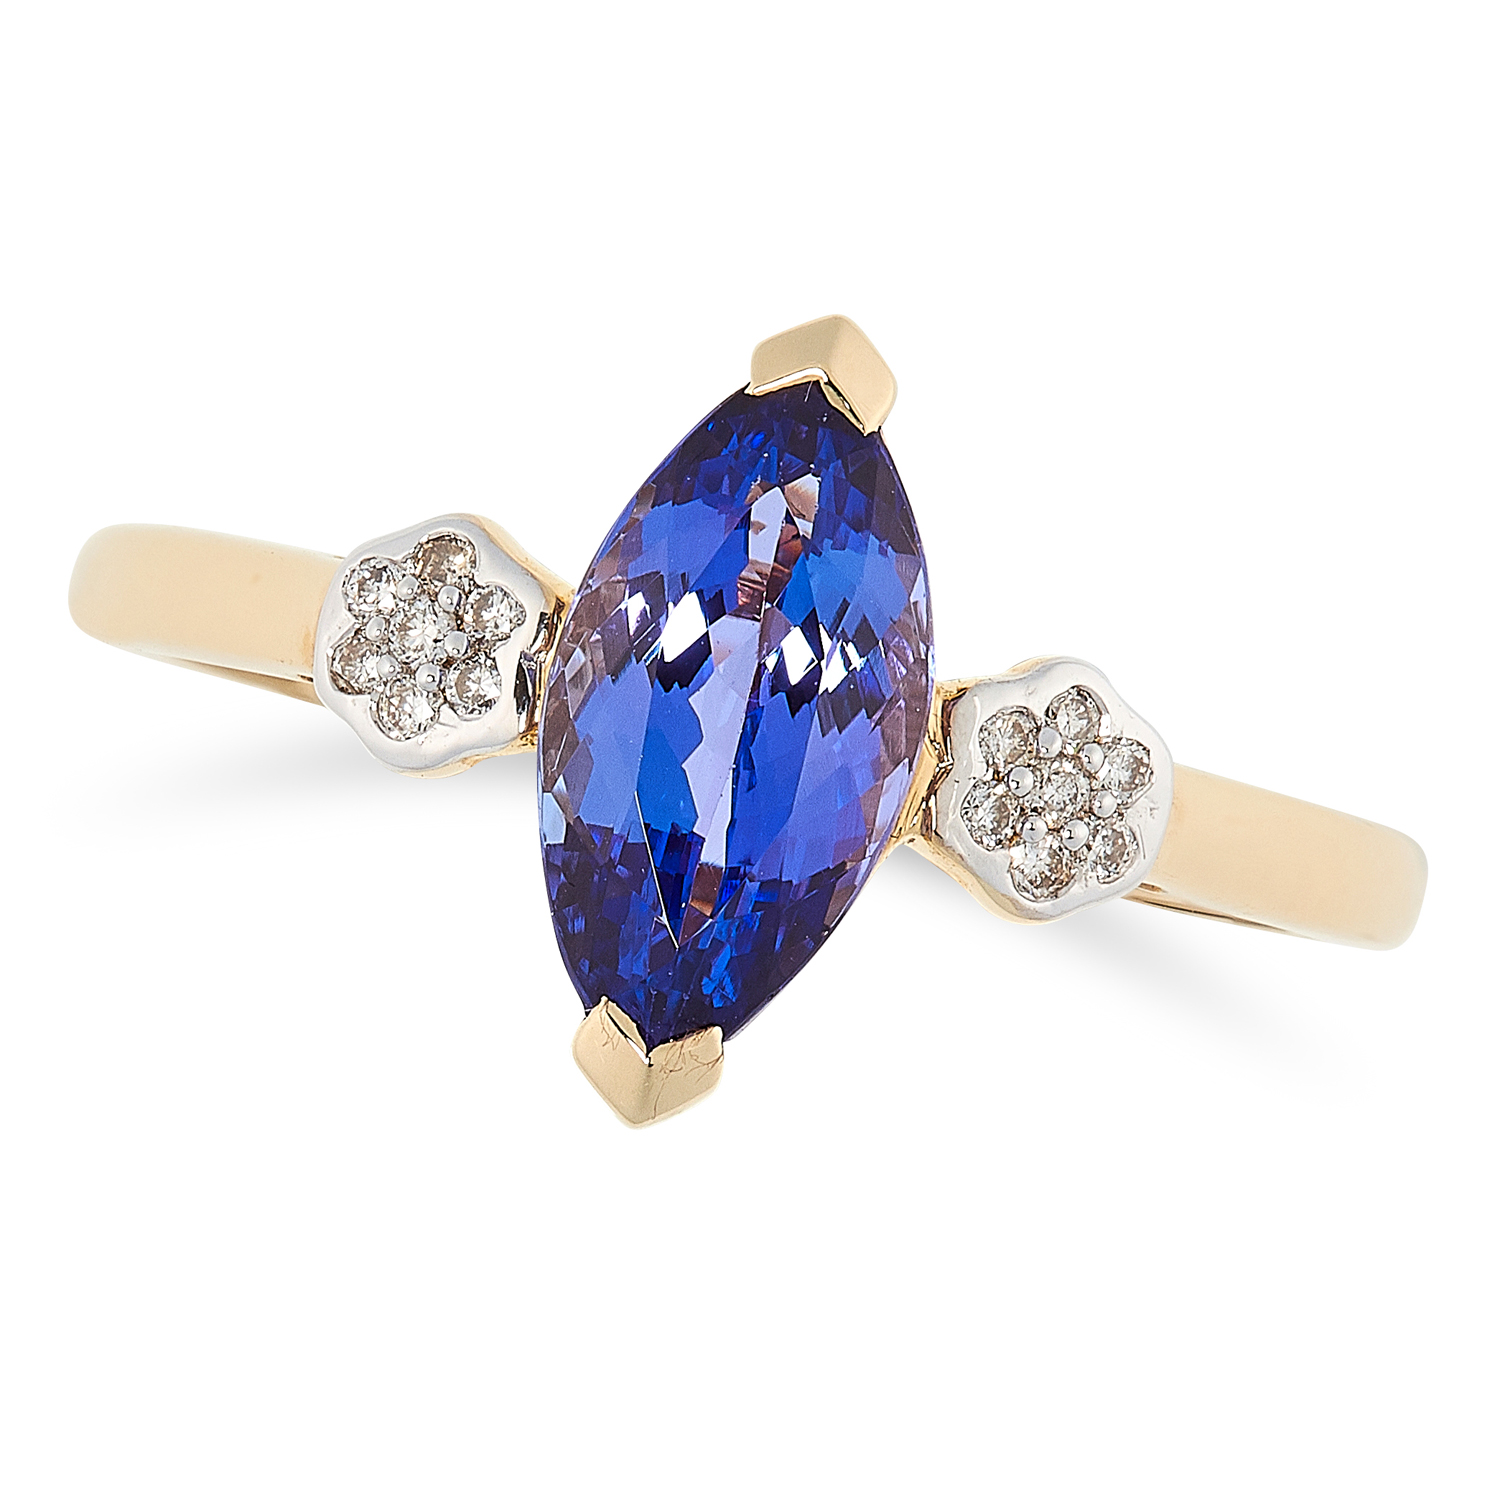 A TANZANITE AND DIAMOND RING in 14ct yellow gold, set with a marquise cut tanzanite in a border of